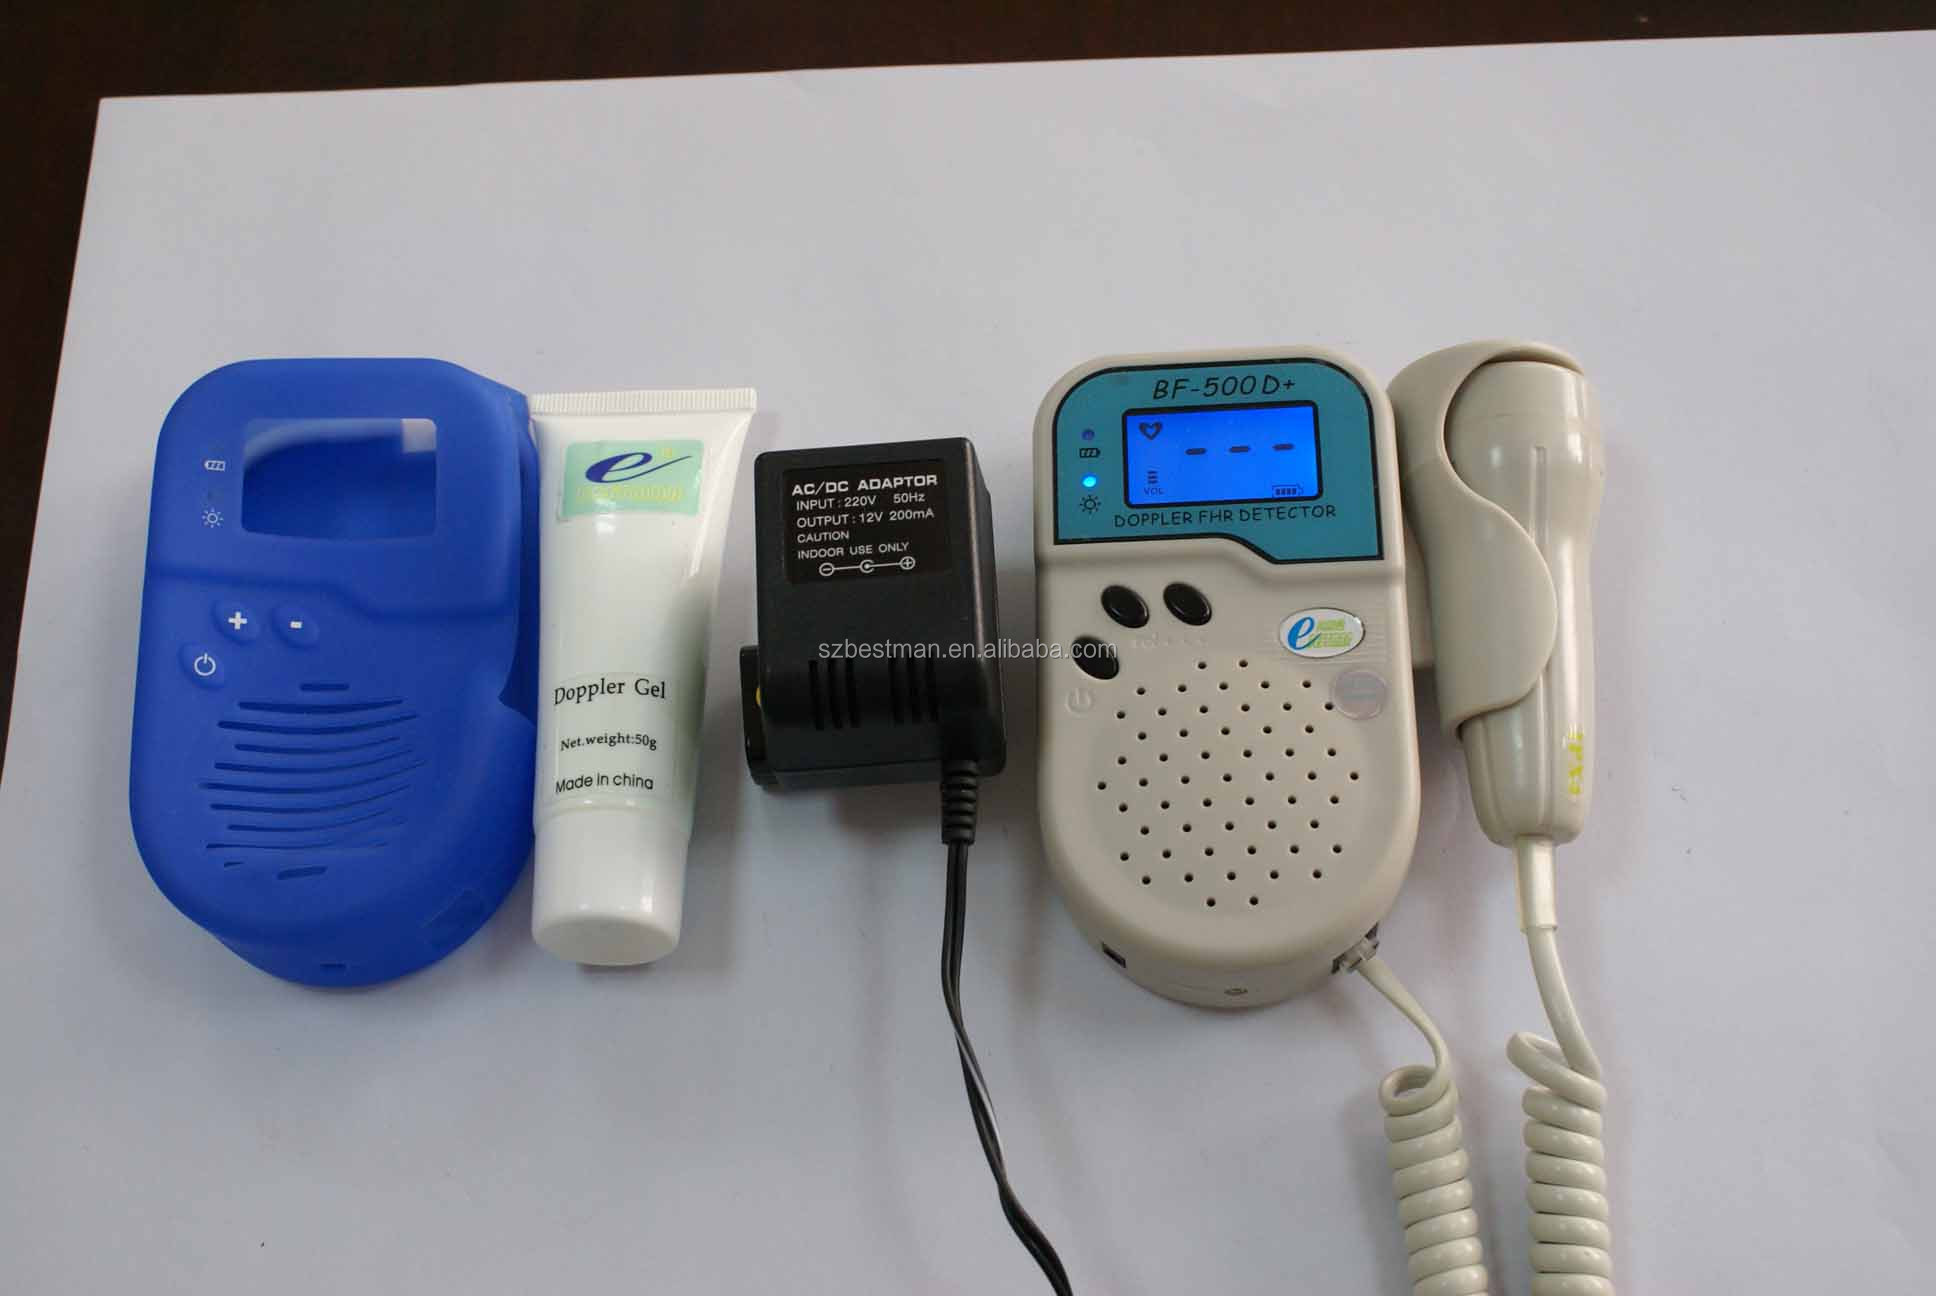 Bestman pocket fetal doppler for fetus heart detect CE model BF-500D+